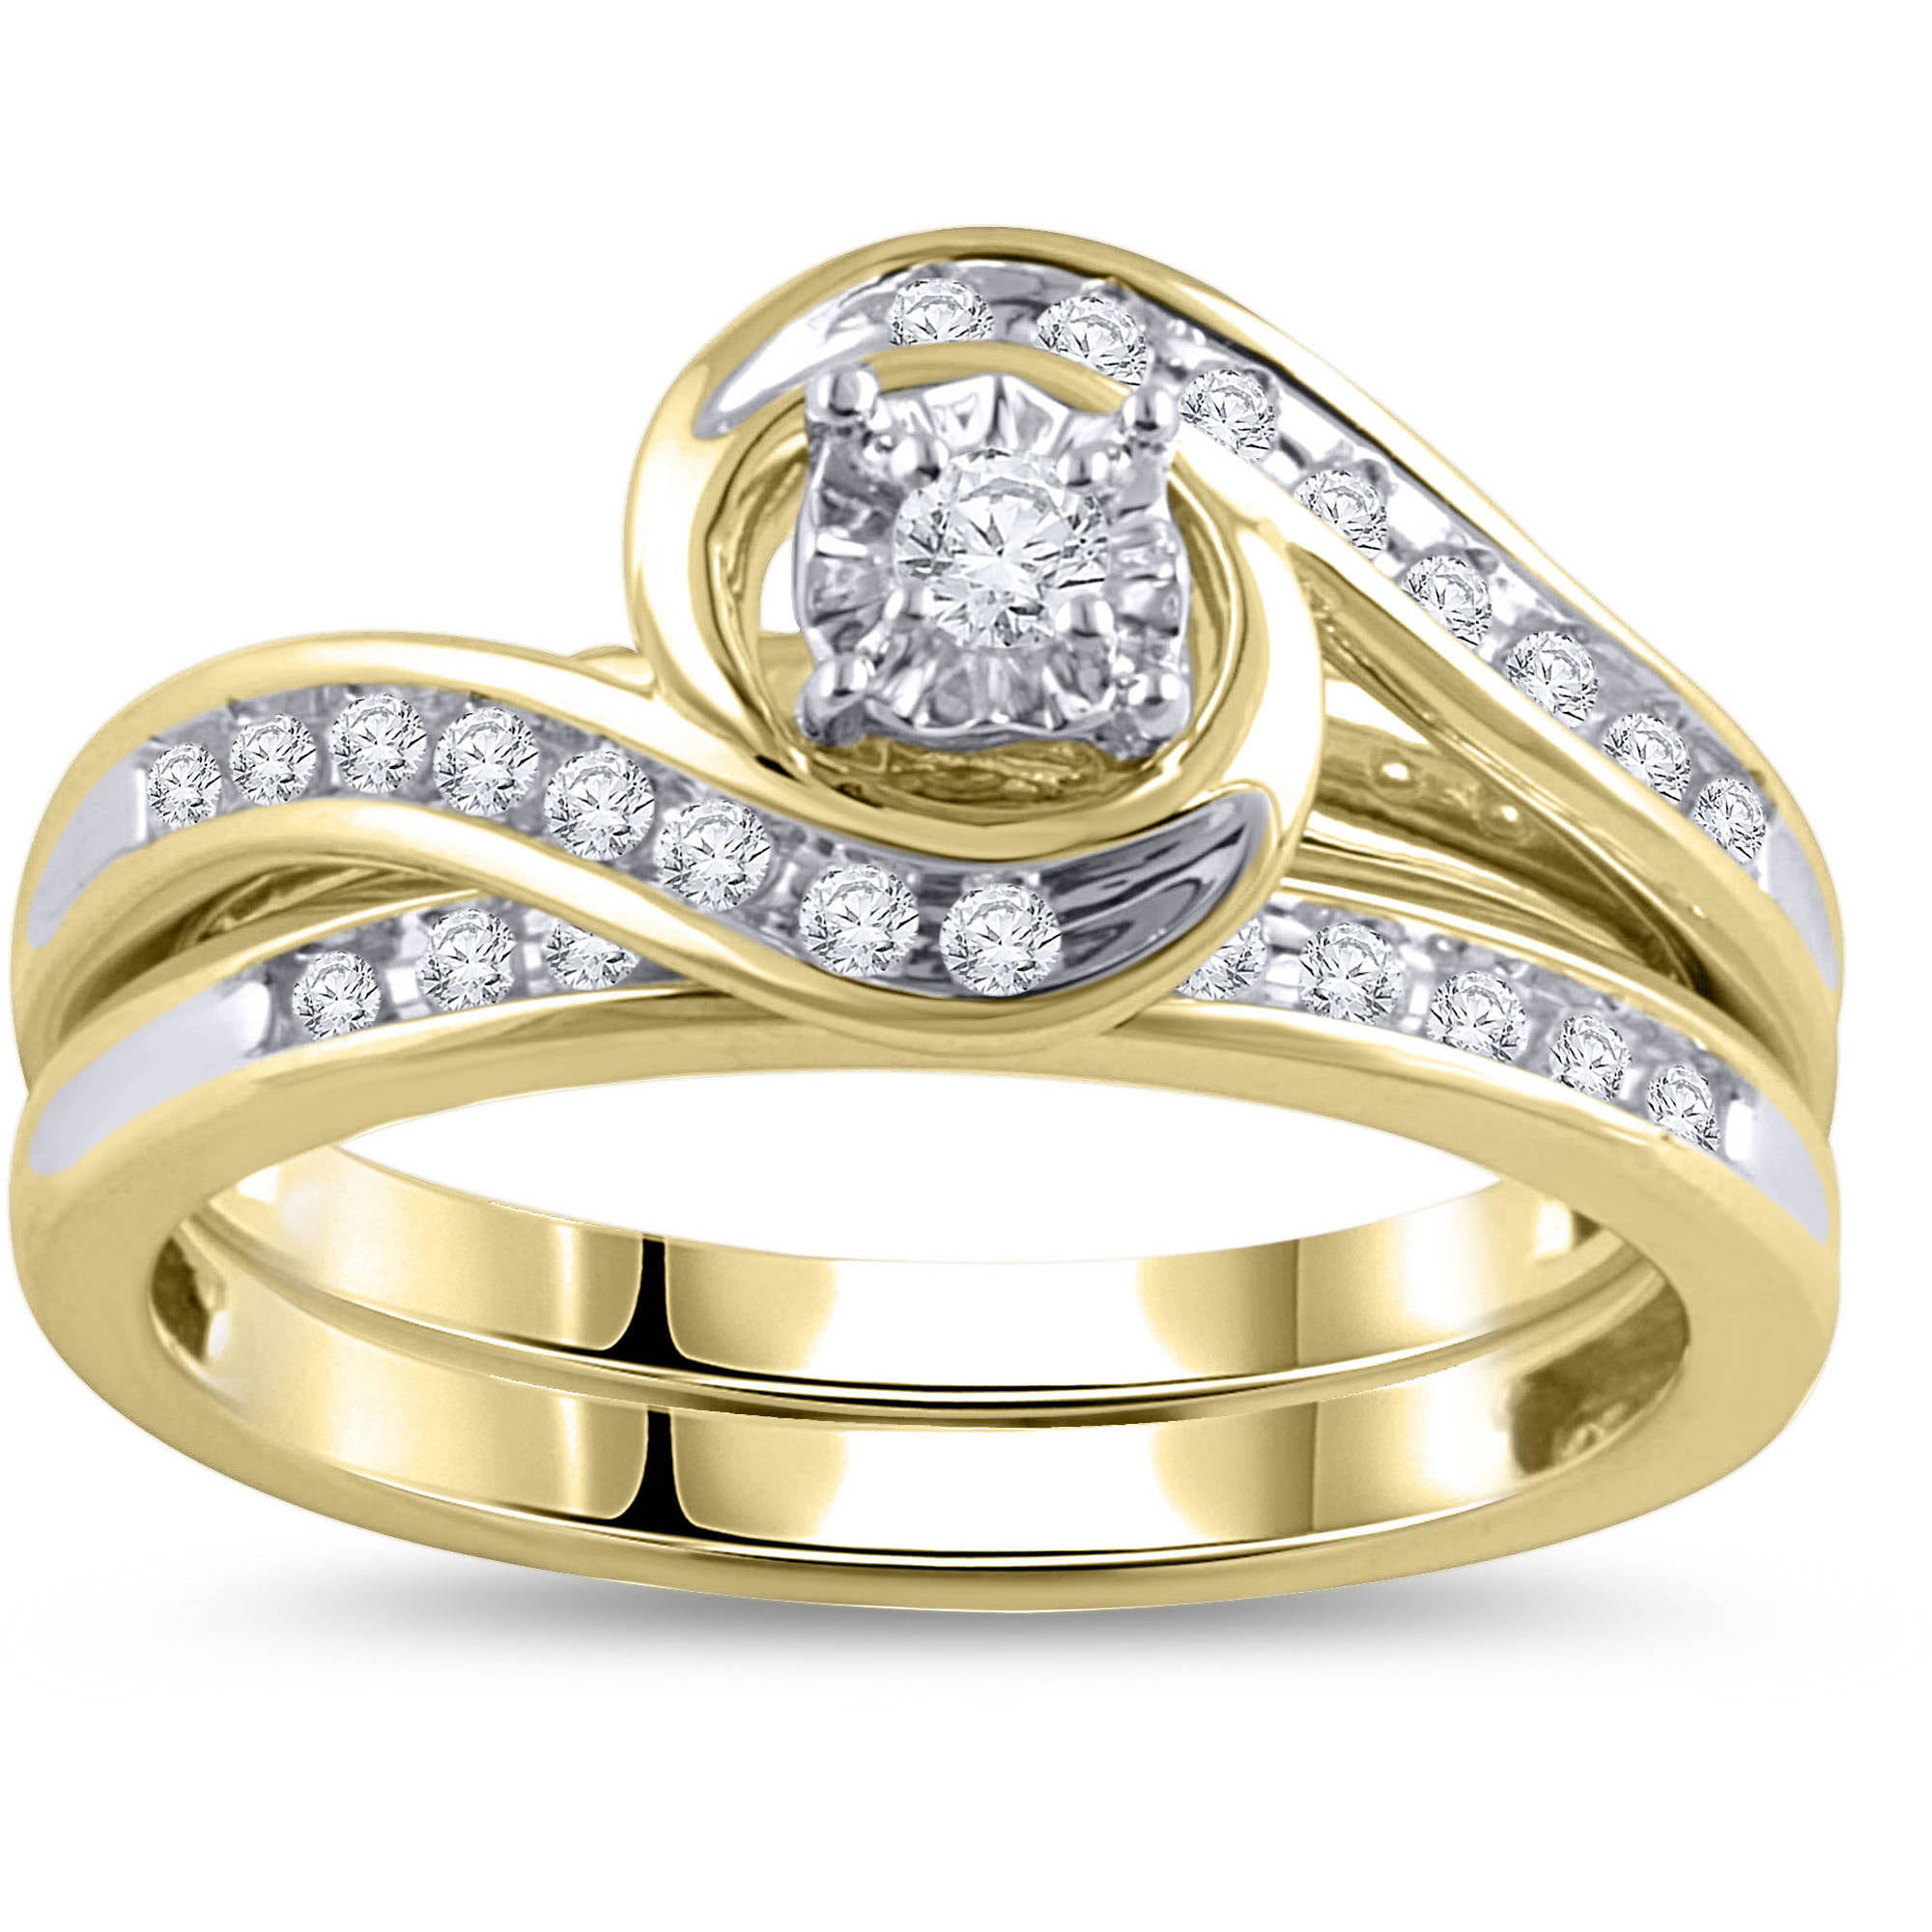 1/3 Carat Diamond Yellow Gold Bypass Bridal Ring Set   Walmart.com